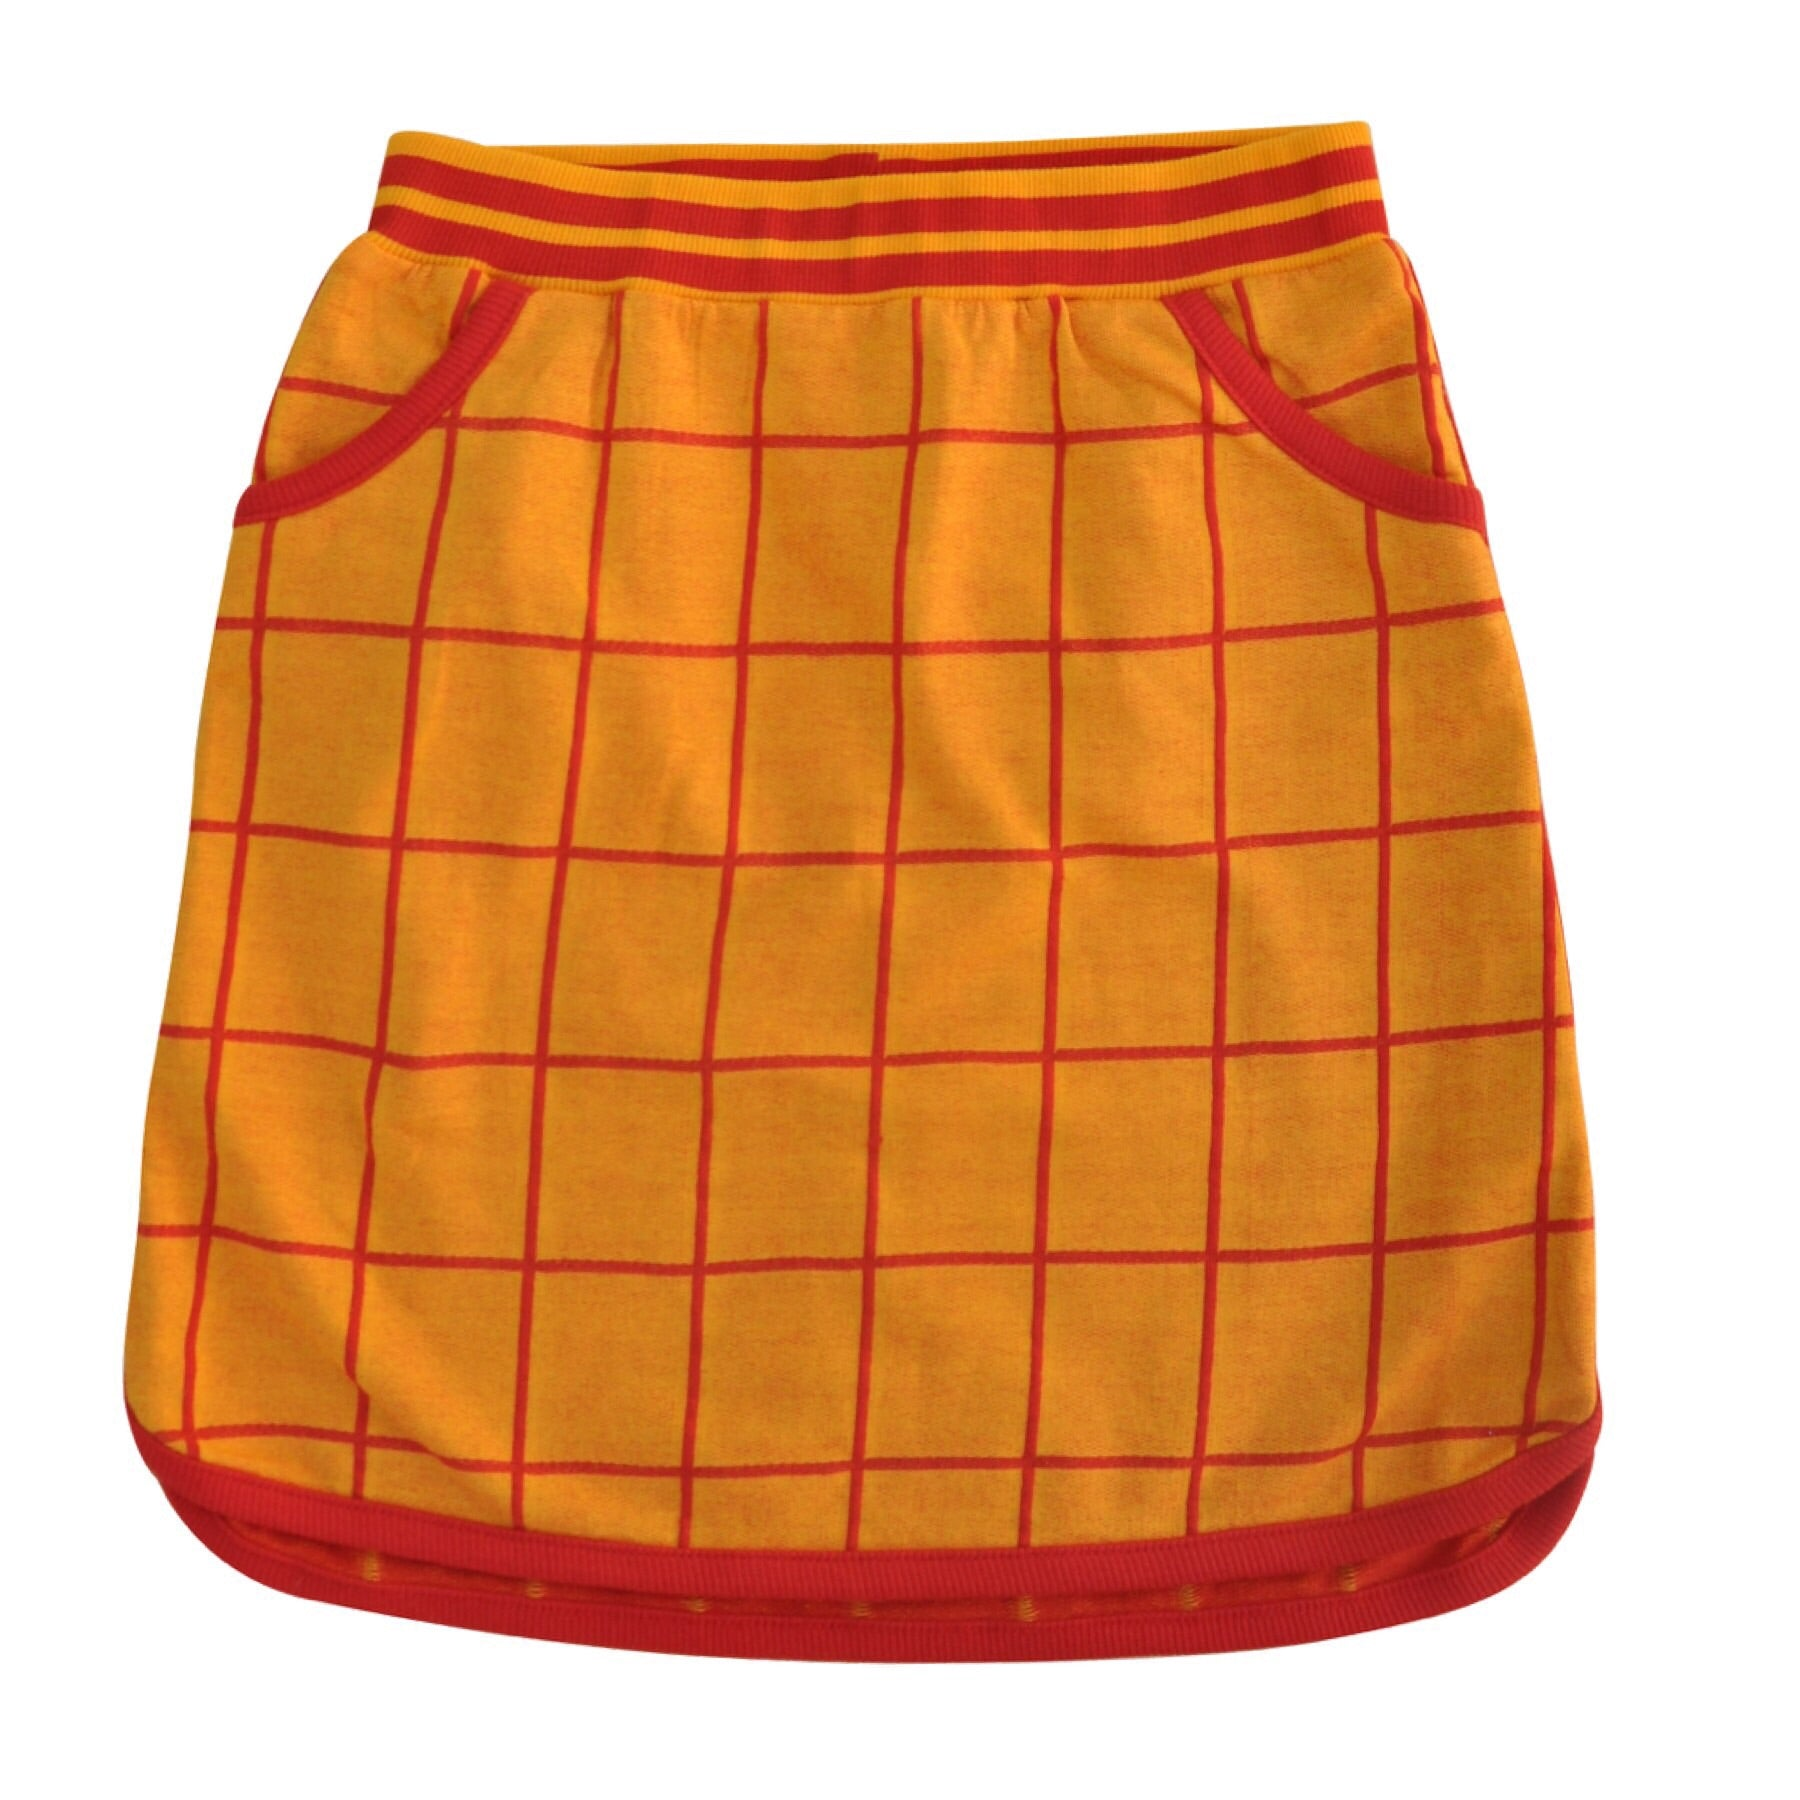 Moromini Retro Running Skirt Grid Jacquard - little-tiger-togs